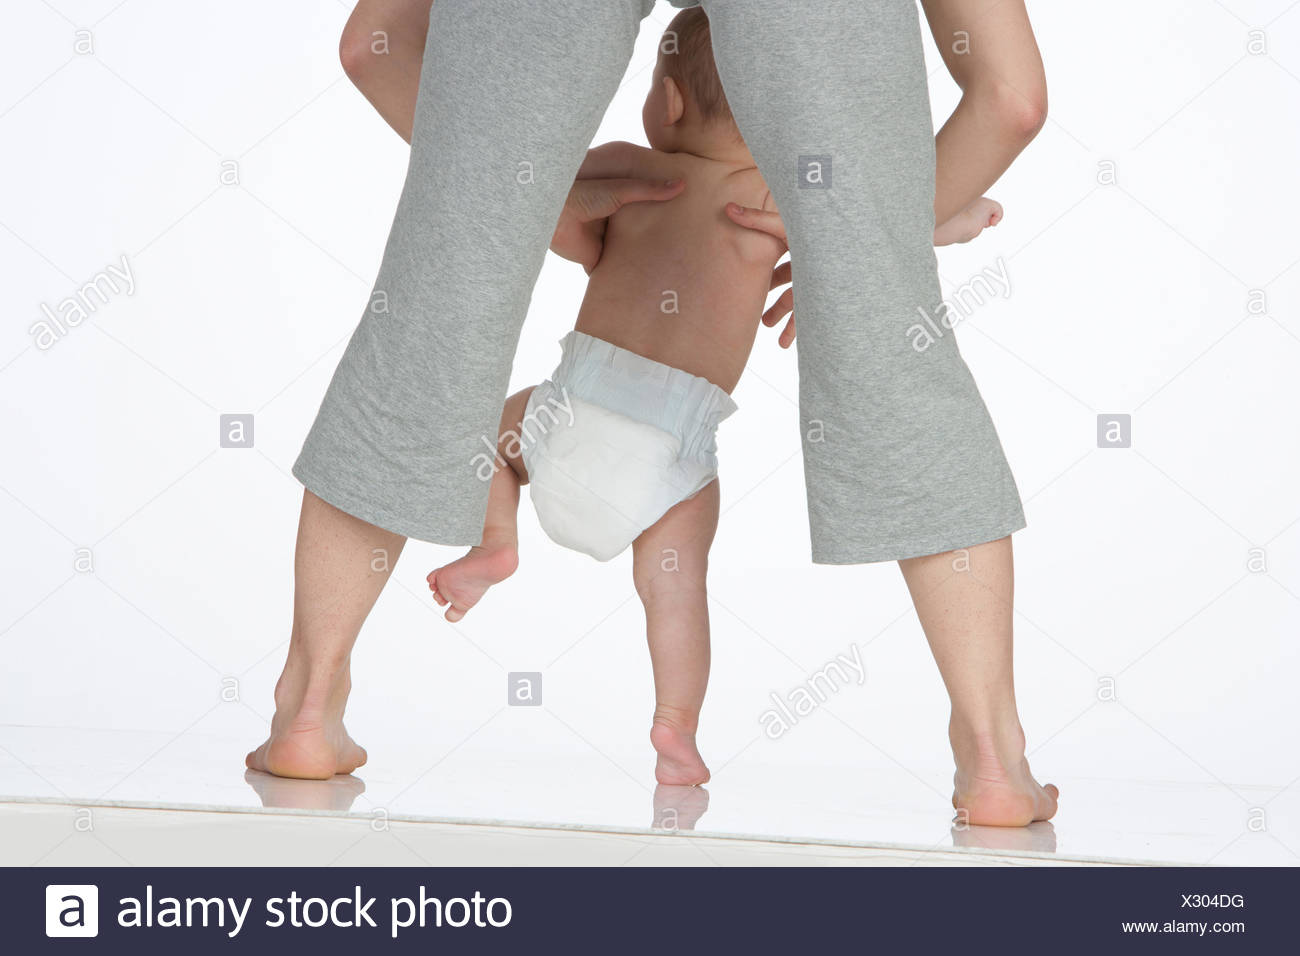 A woman holding a baby - Stock Image